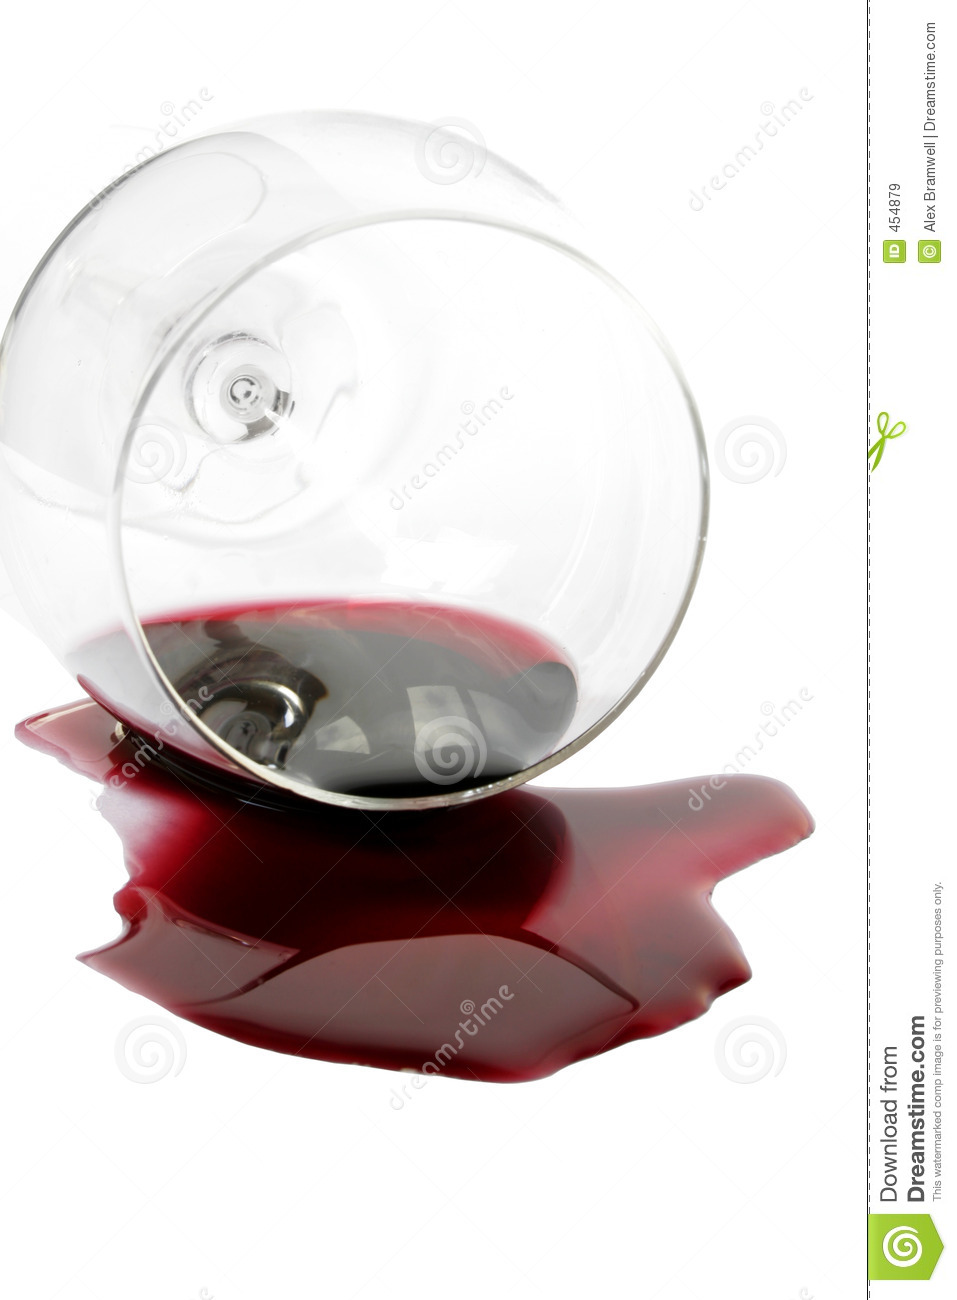 Spilt Red Wine Royalty Free Stock Images - Image: 454879